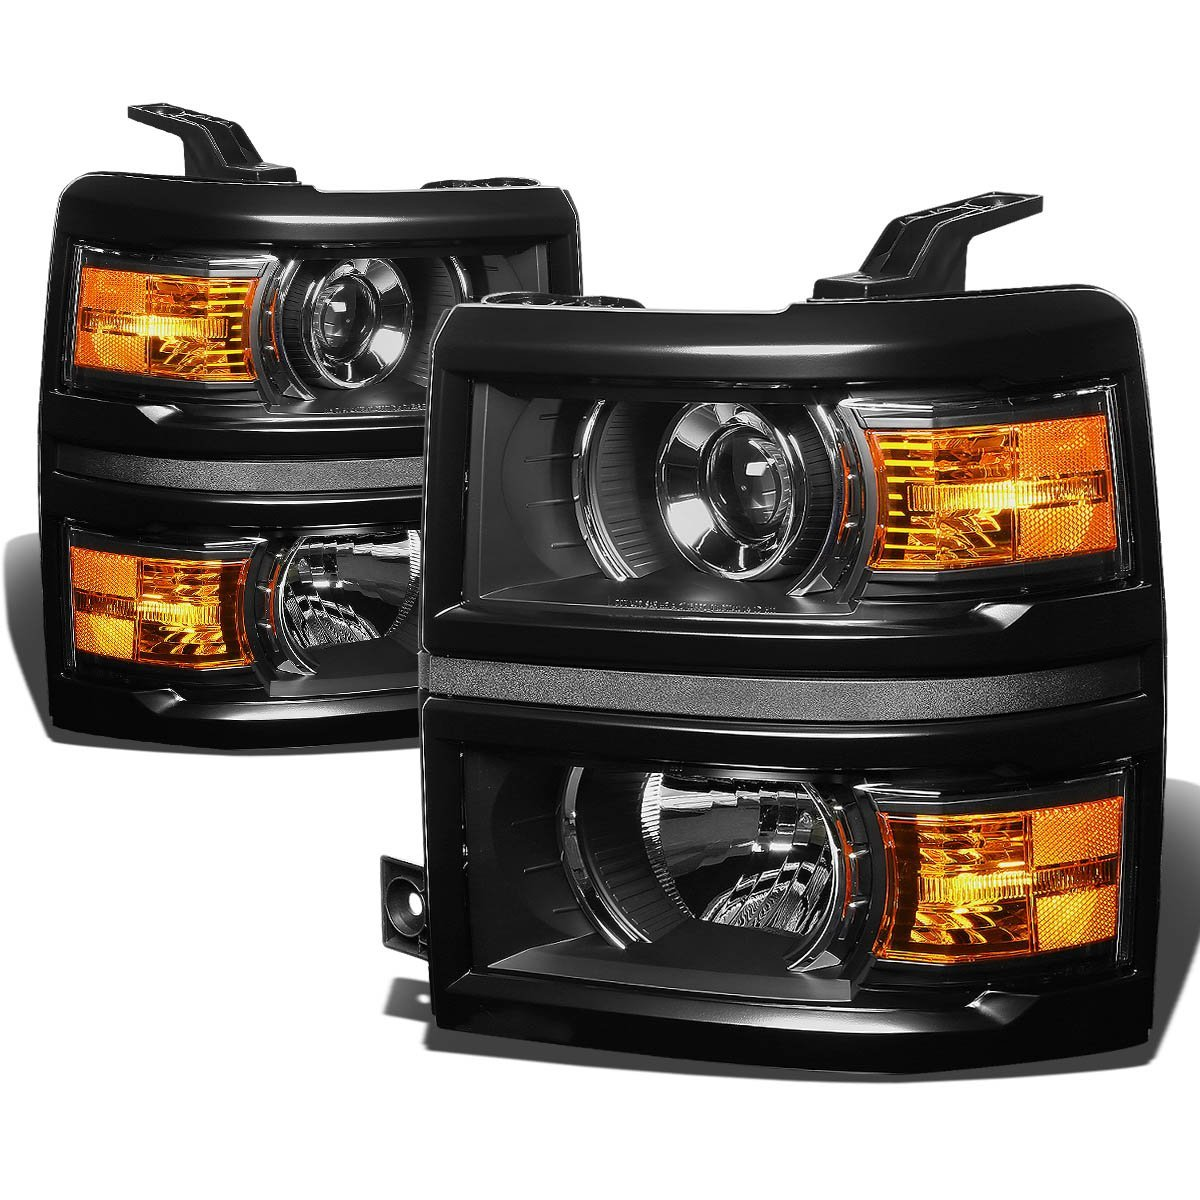 2014 2016 chevy silverado 1500 2500 3500 hd projector headlights black 32 2014 15 chevy silverado 1500 projector headlights black  at soozxer.org